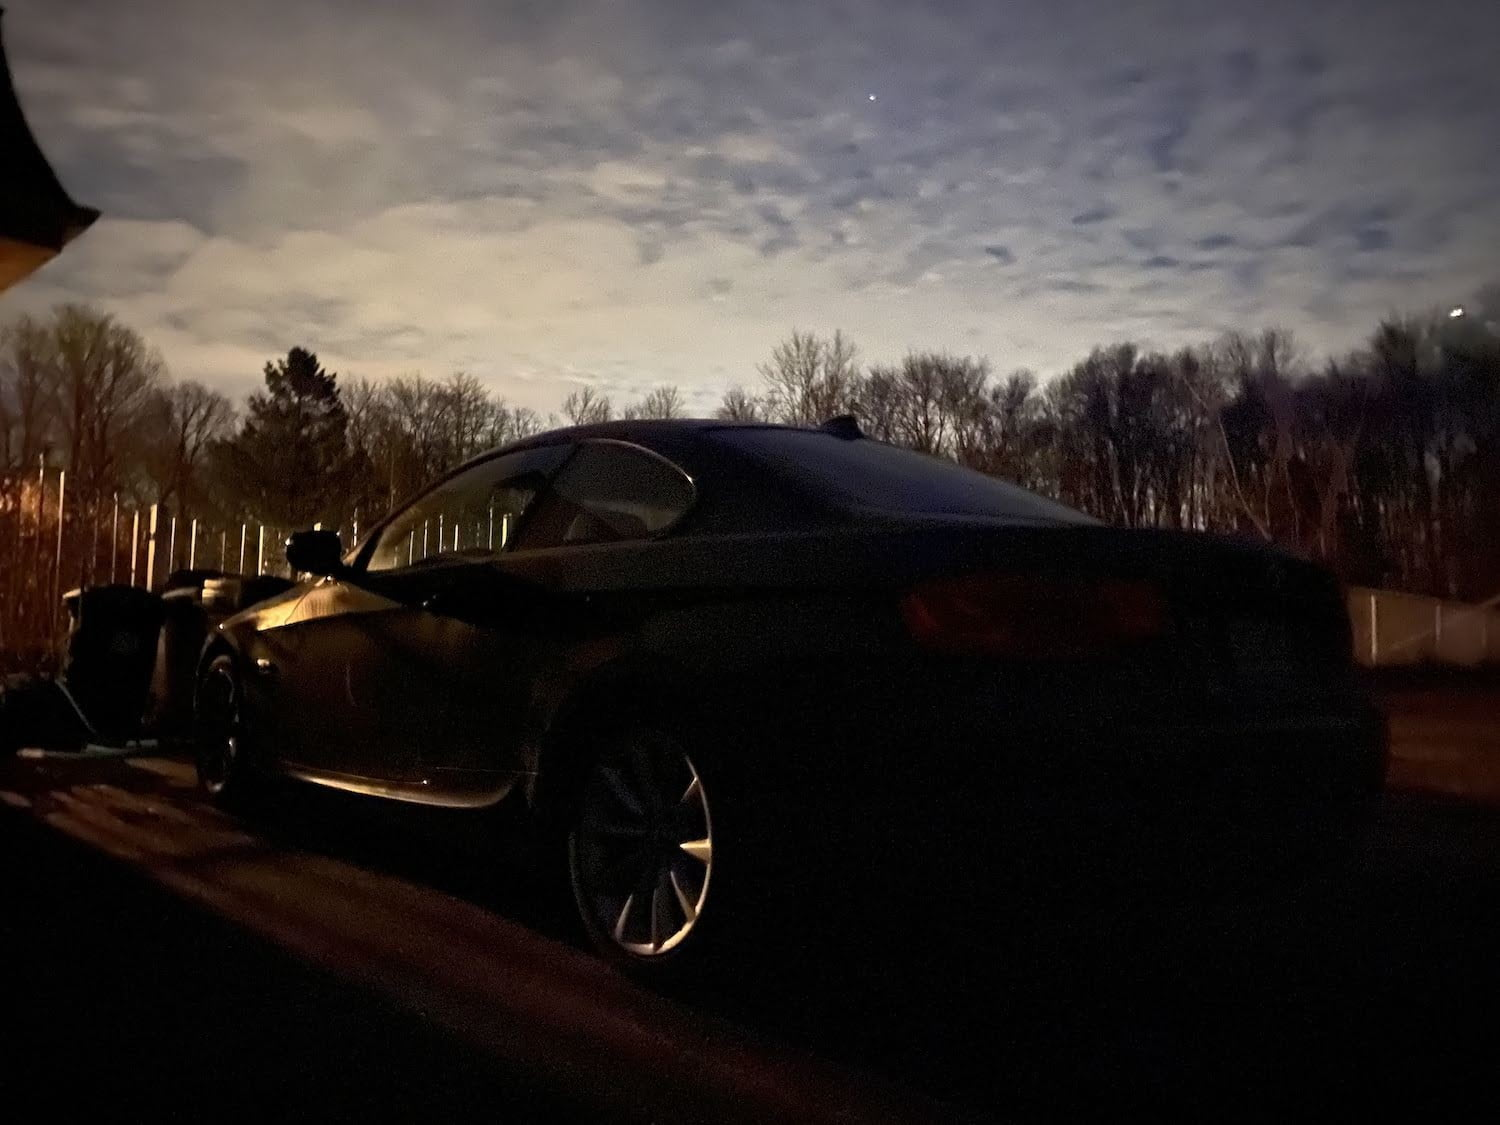 samsung galaxy s20 ultra review iphone night car